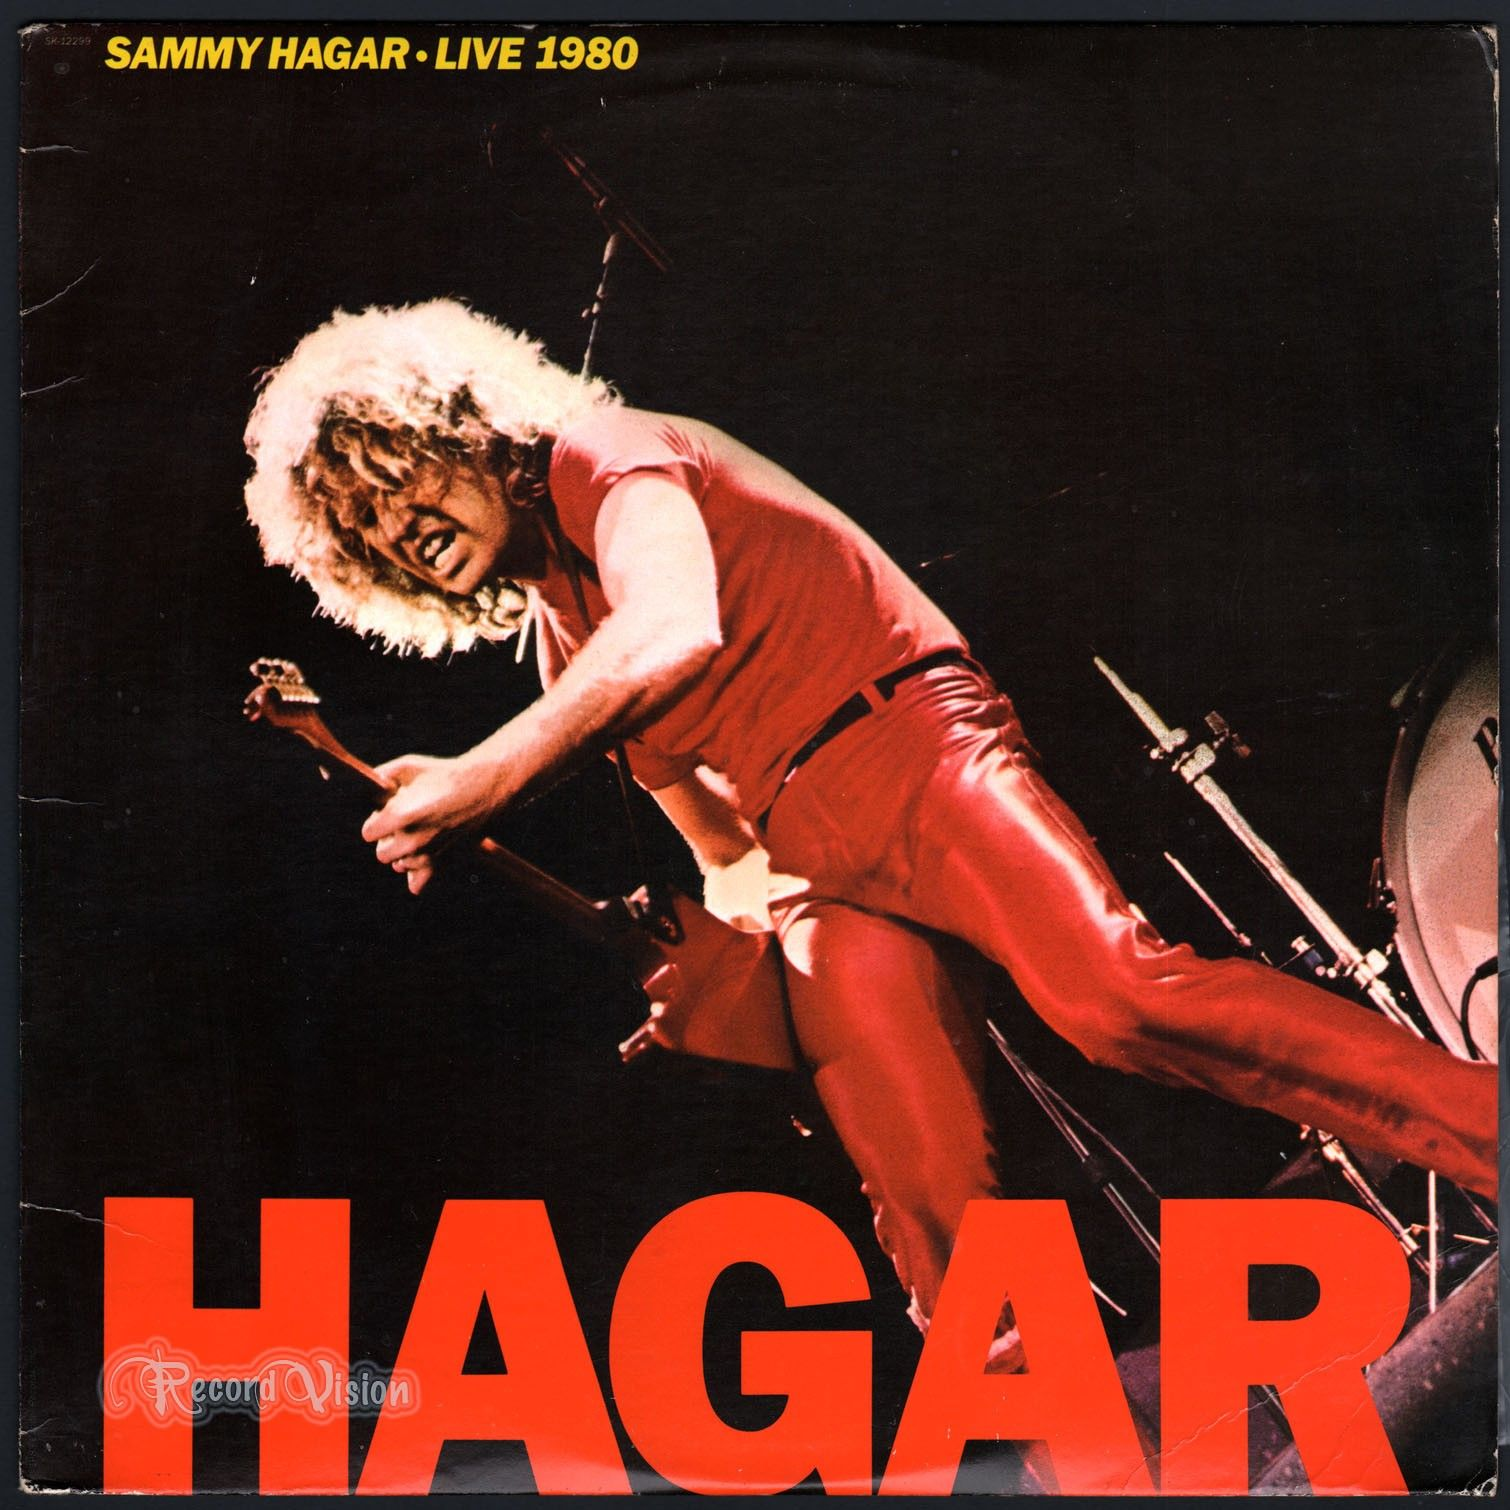 Live 1980 By Sammy Hagar Was Recorded During The Tour Promoting His Then Newest Album Danger Zon Sammy Hagar Vinyl Record Album Capitol Records